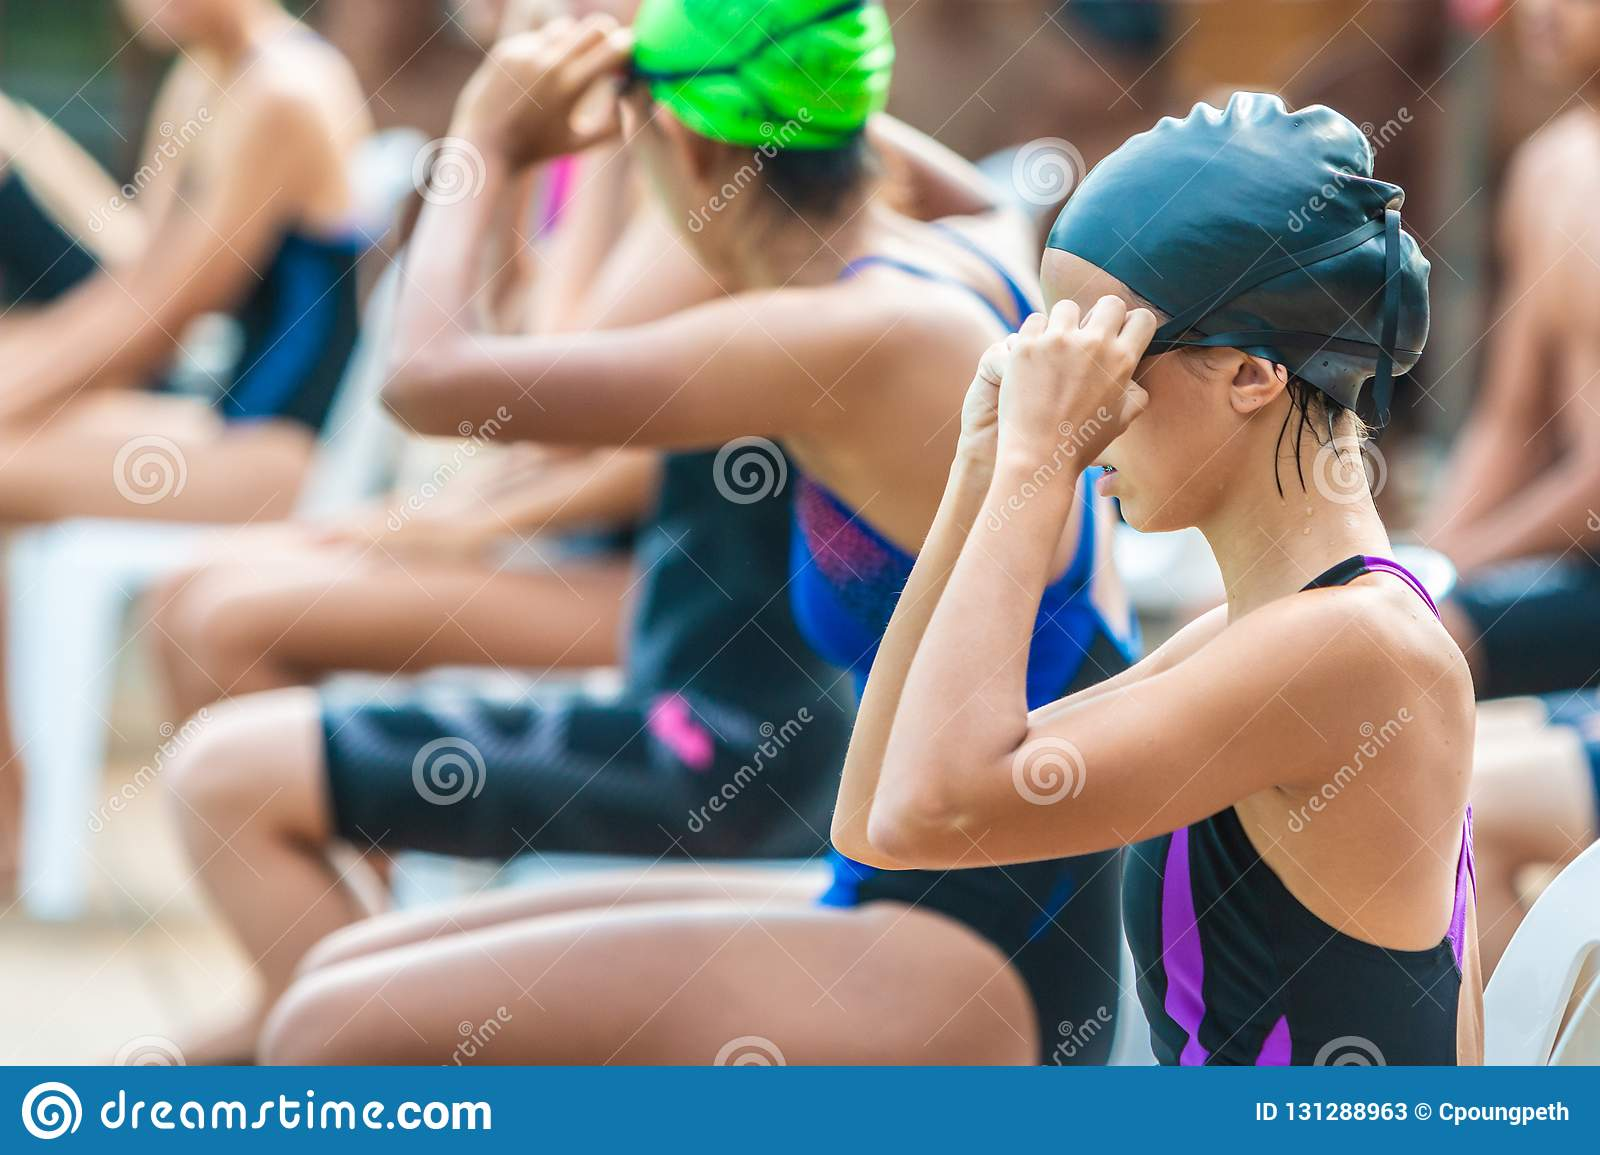 Female swimmers getting ready and waiting to swim